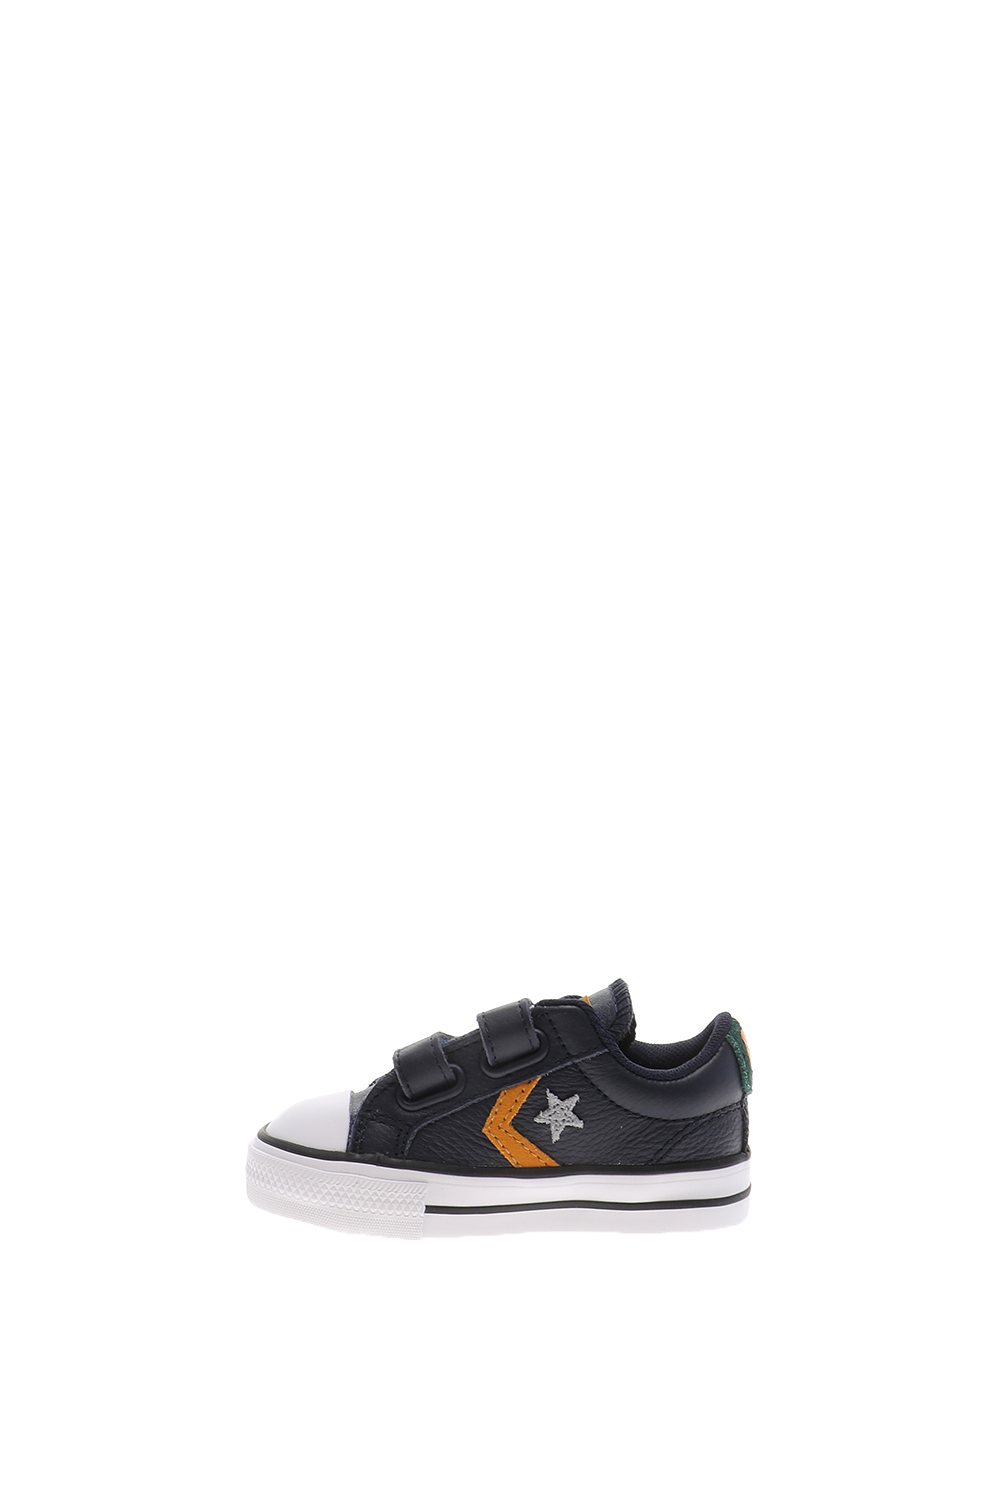 CONVERSE – Βρεφικά sneakers CONVERSE Star Player 2V μαύρα